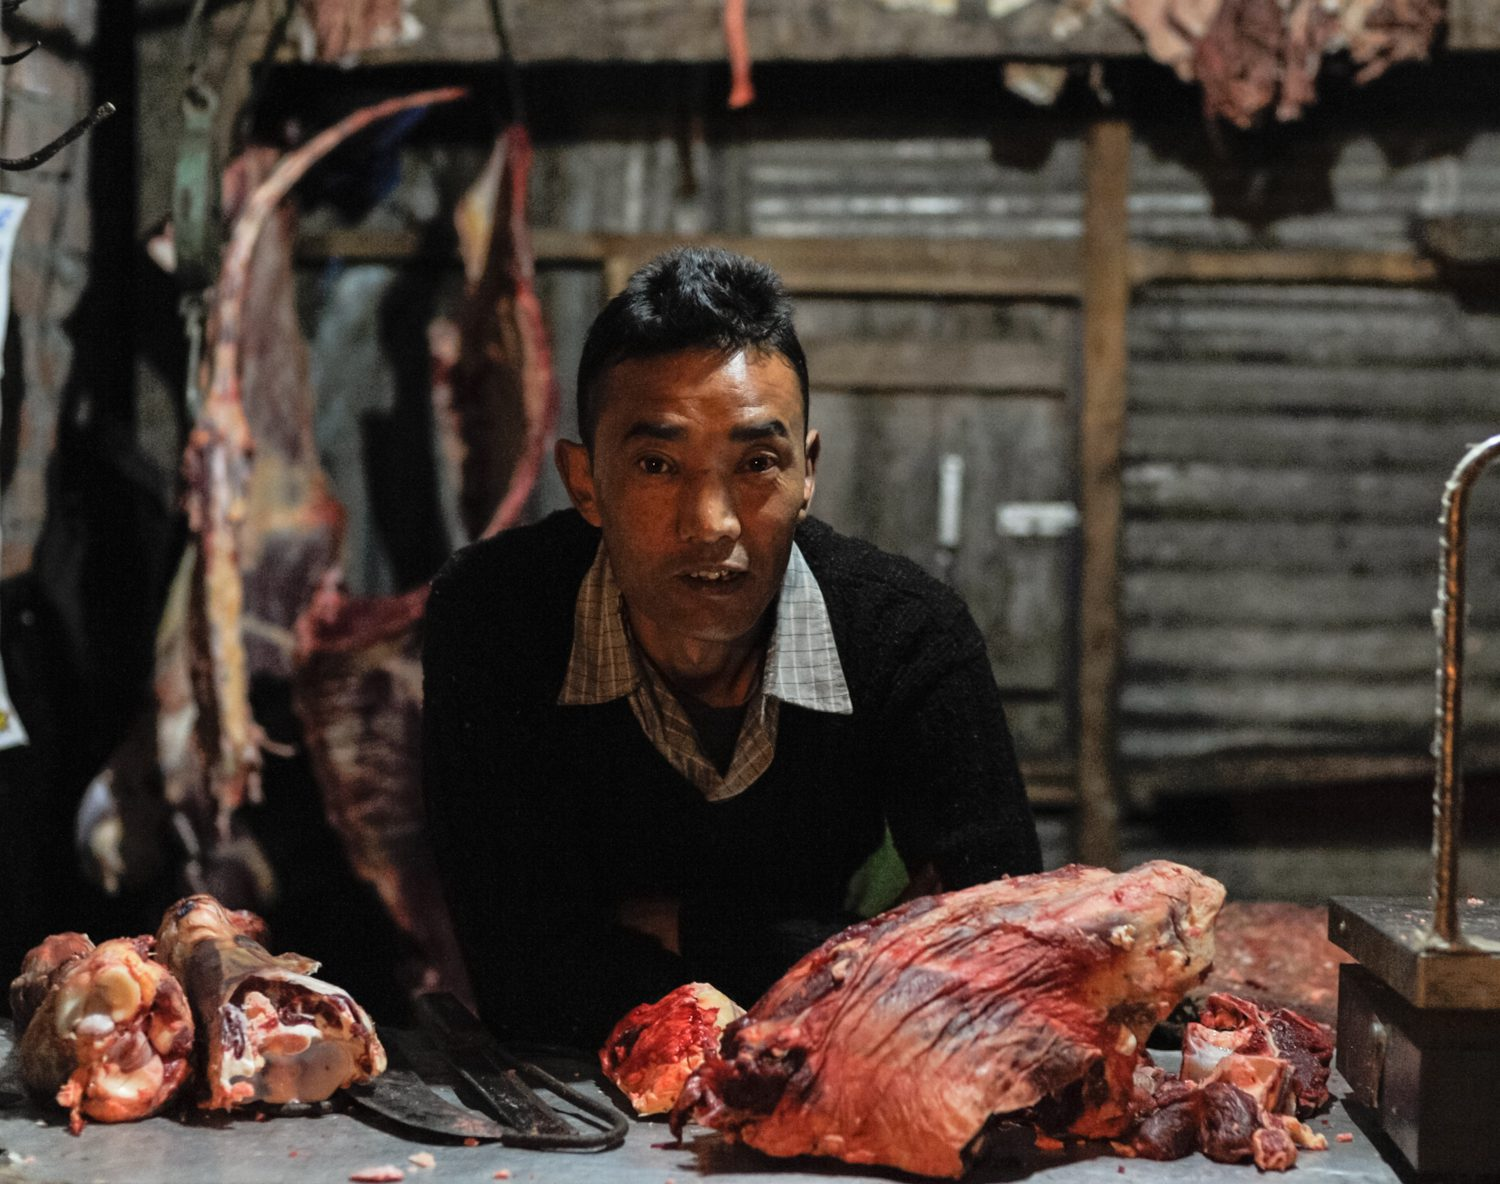 butcher darjeeling documentary photography stuart coleman